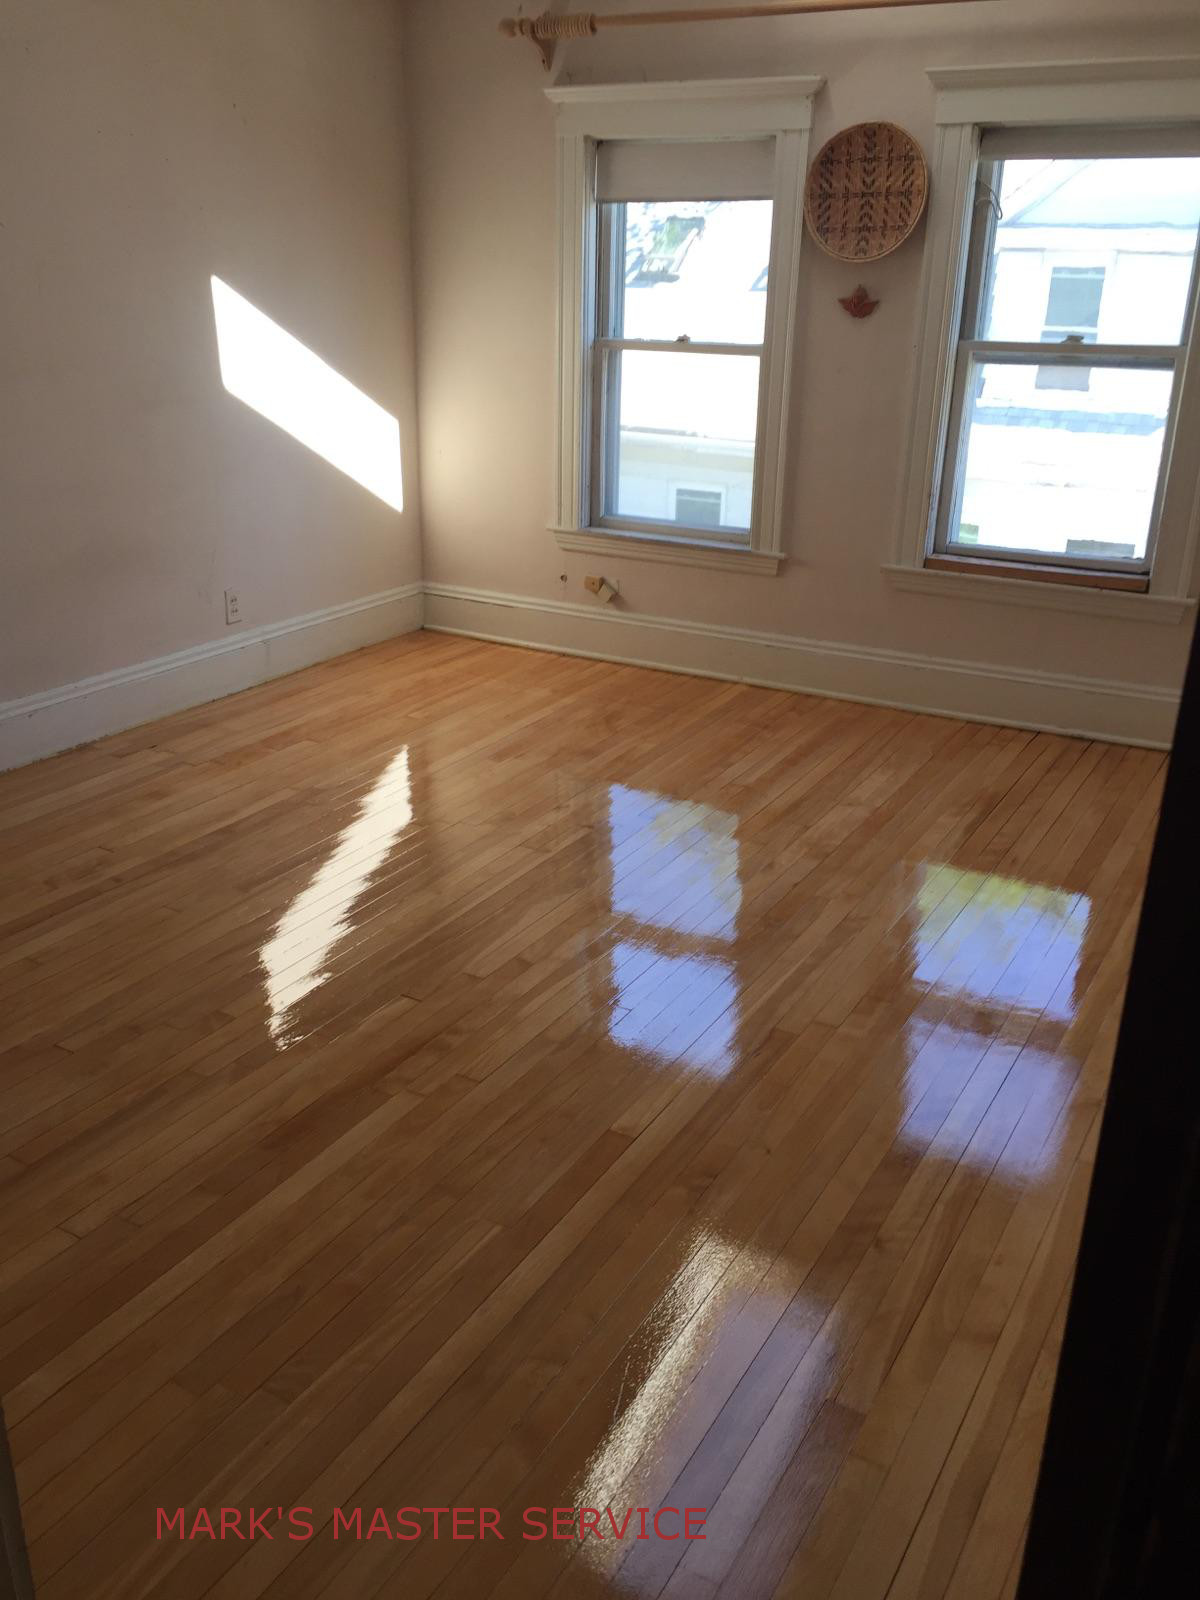 Before and after pictures in Watertown… Client is getting the house ready  for sale… And they must have beautiful floors! Read More - Mark's Master Service Wood Floor Refinishing, Sanding